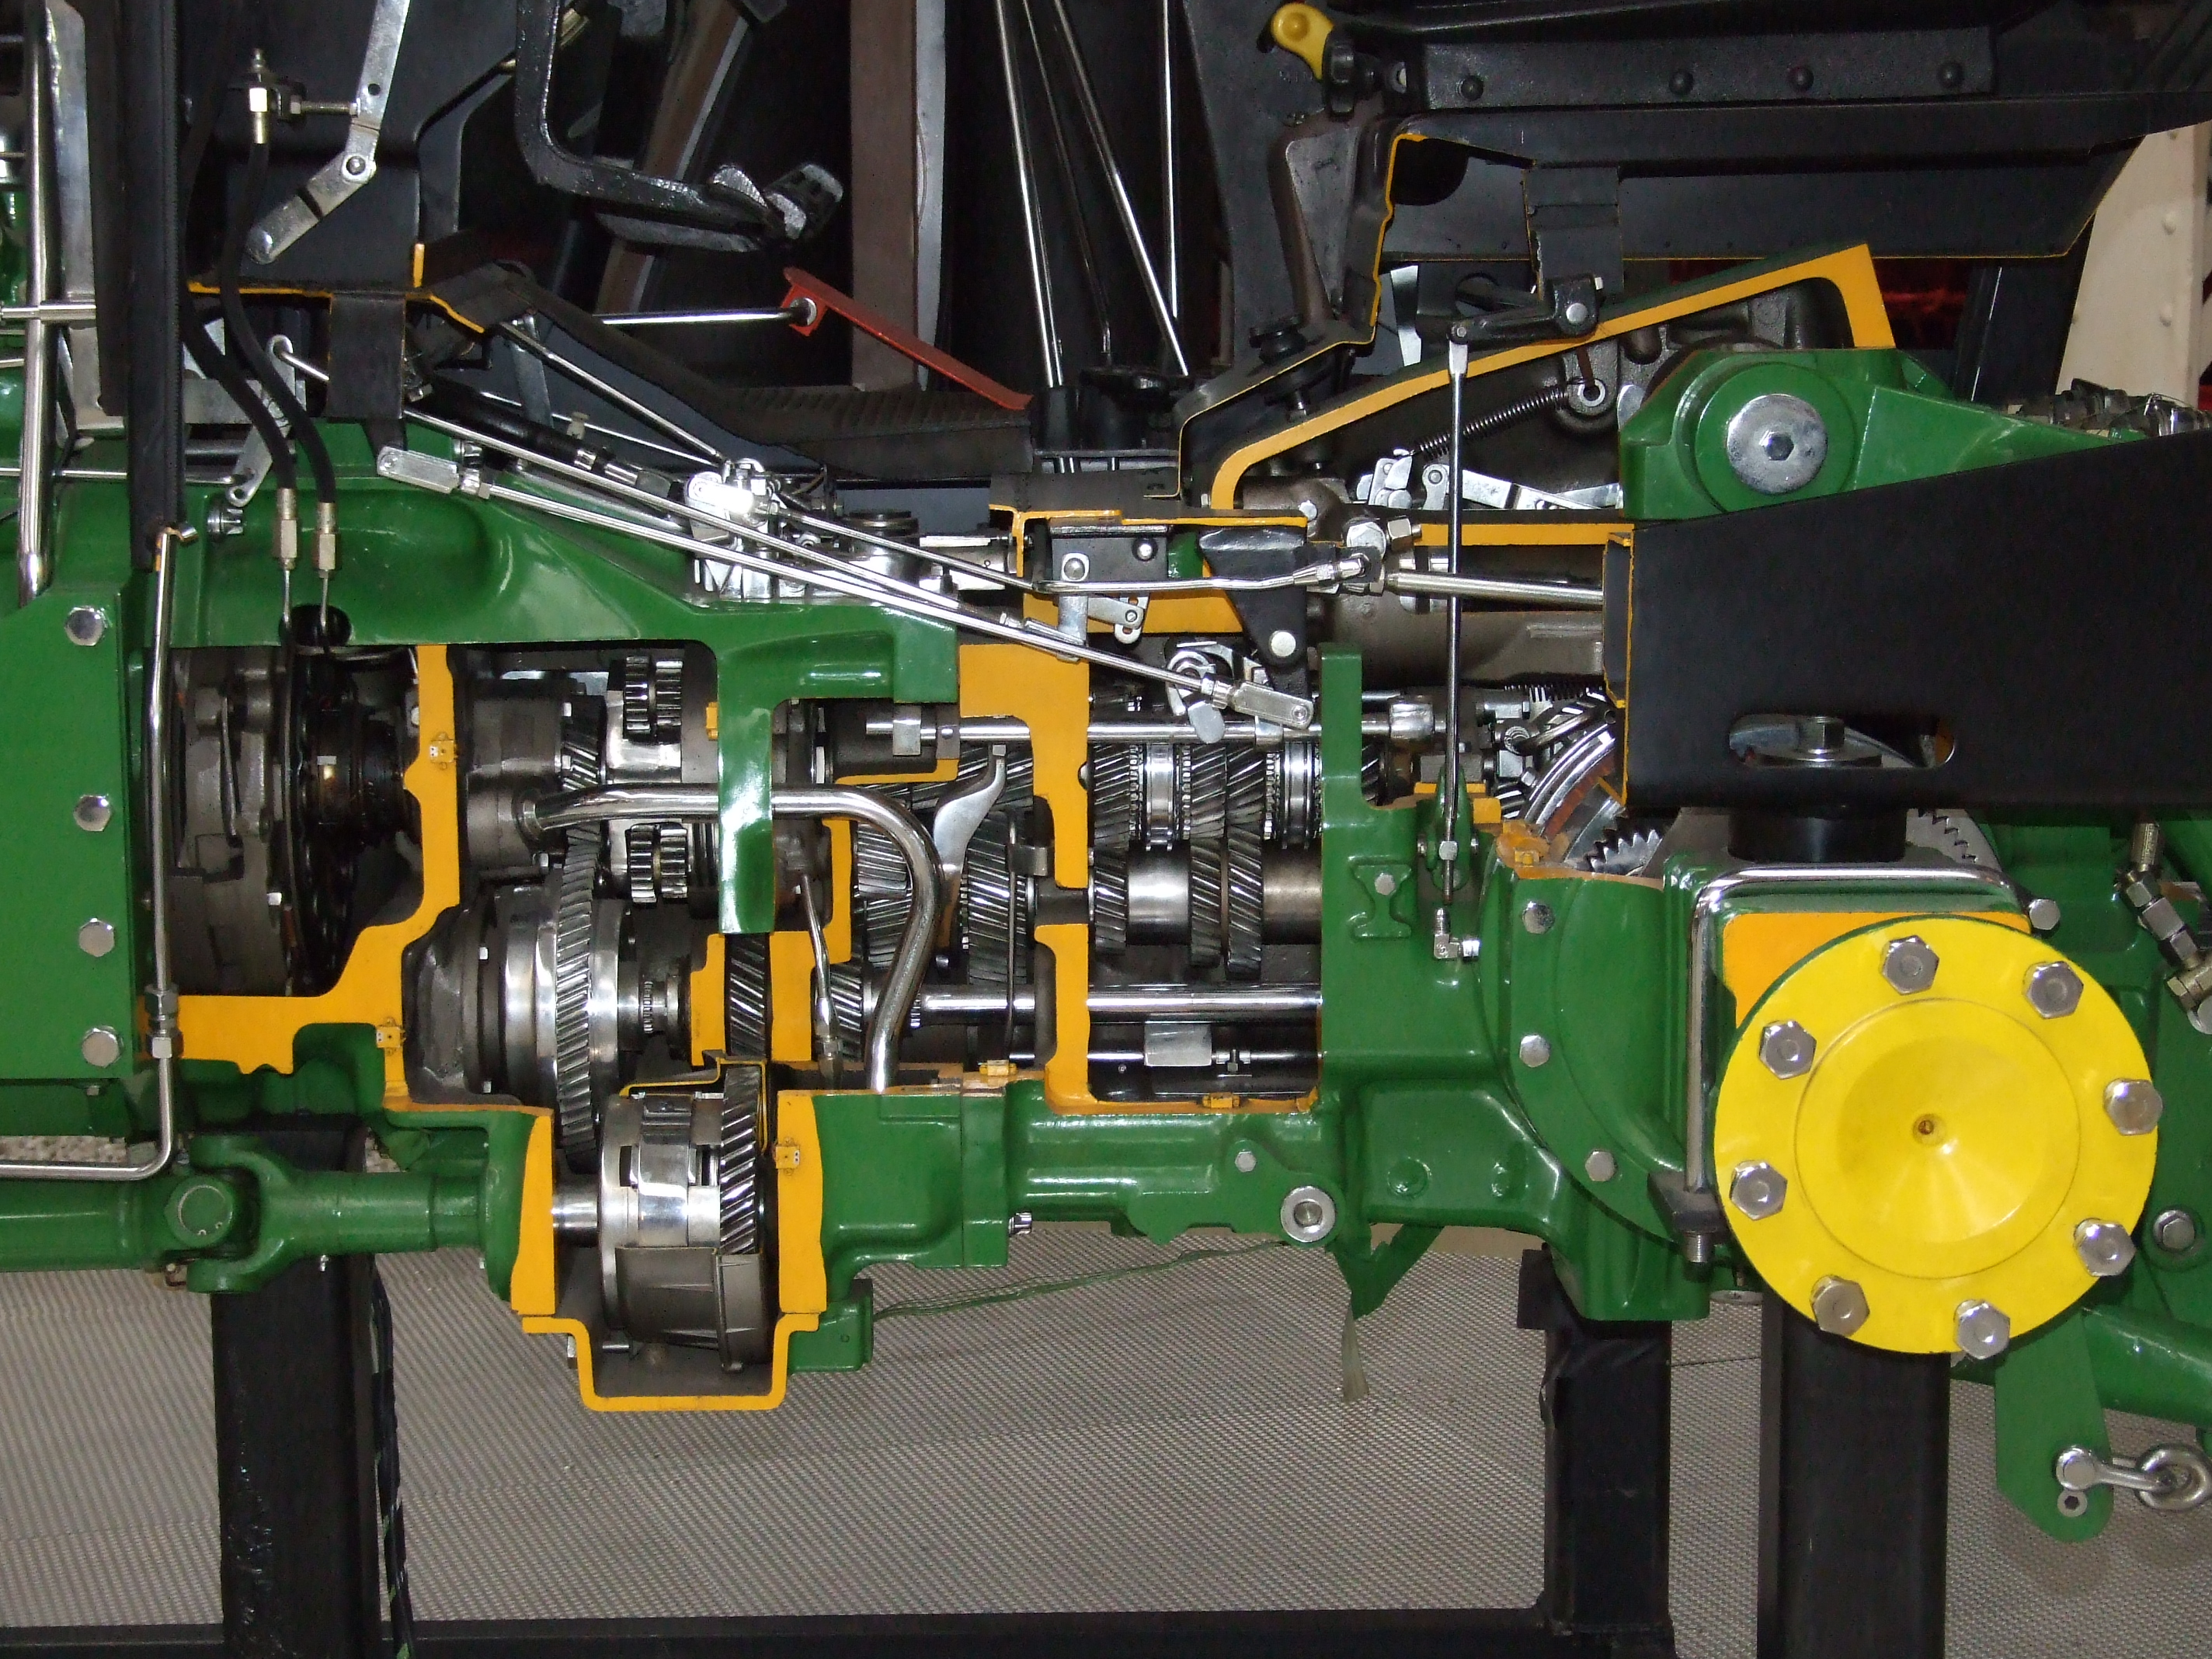 Cutaway of a John Deere 3350 tractor transmission with 16